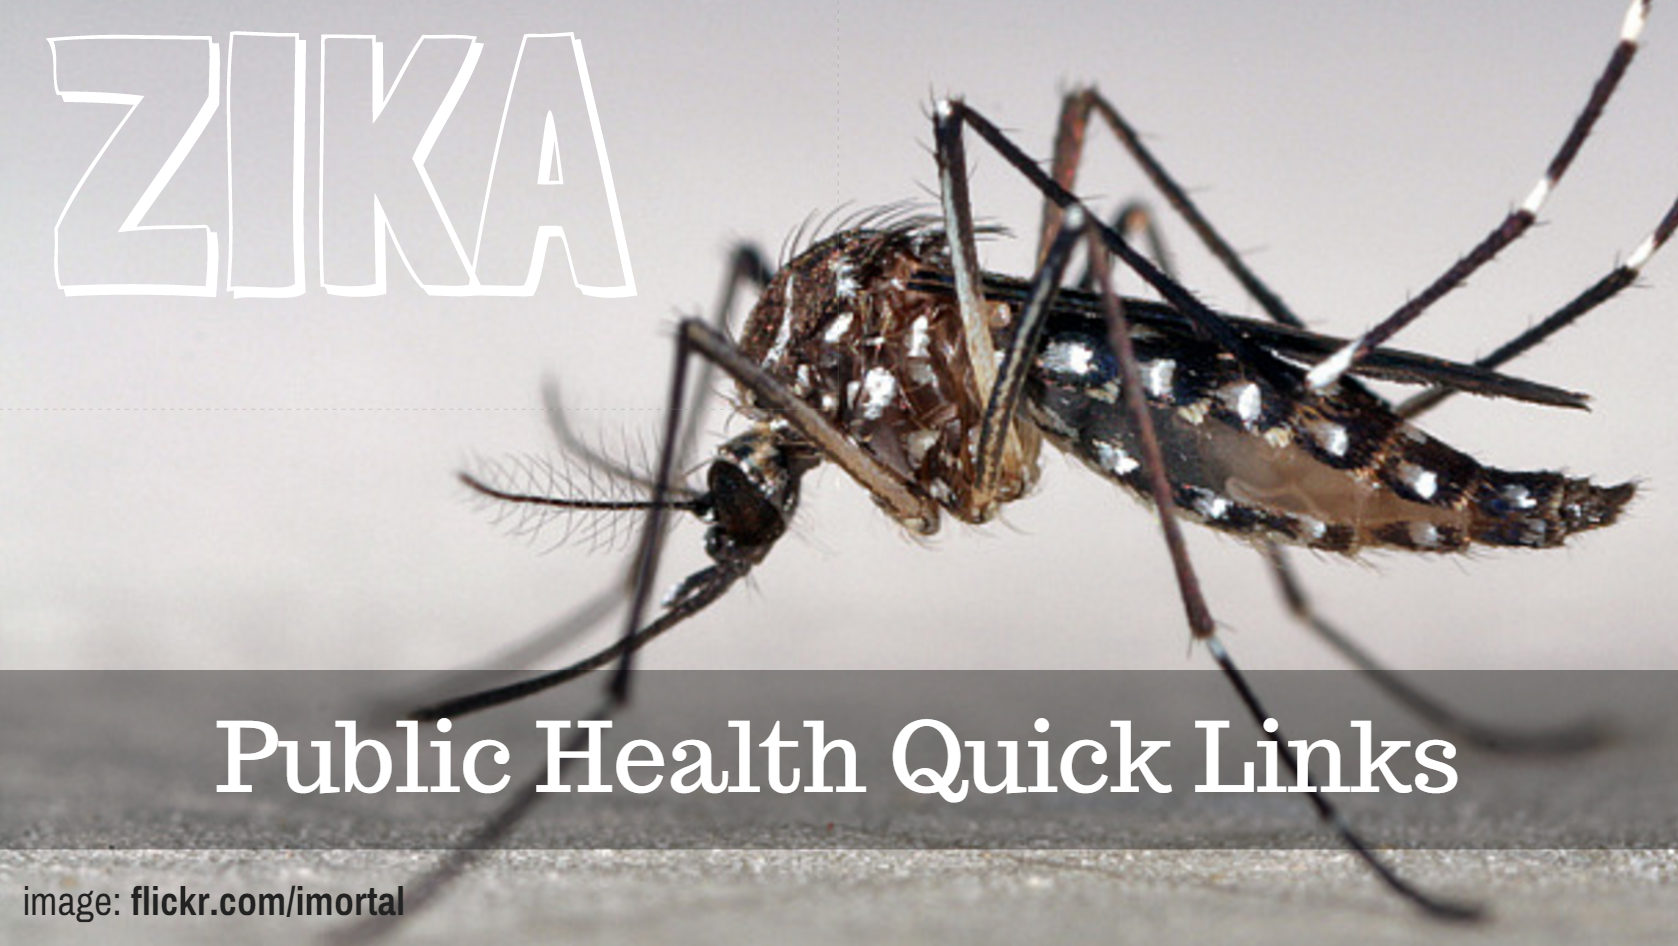 ZIKA VIRUS: Quick Links for Public Health